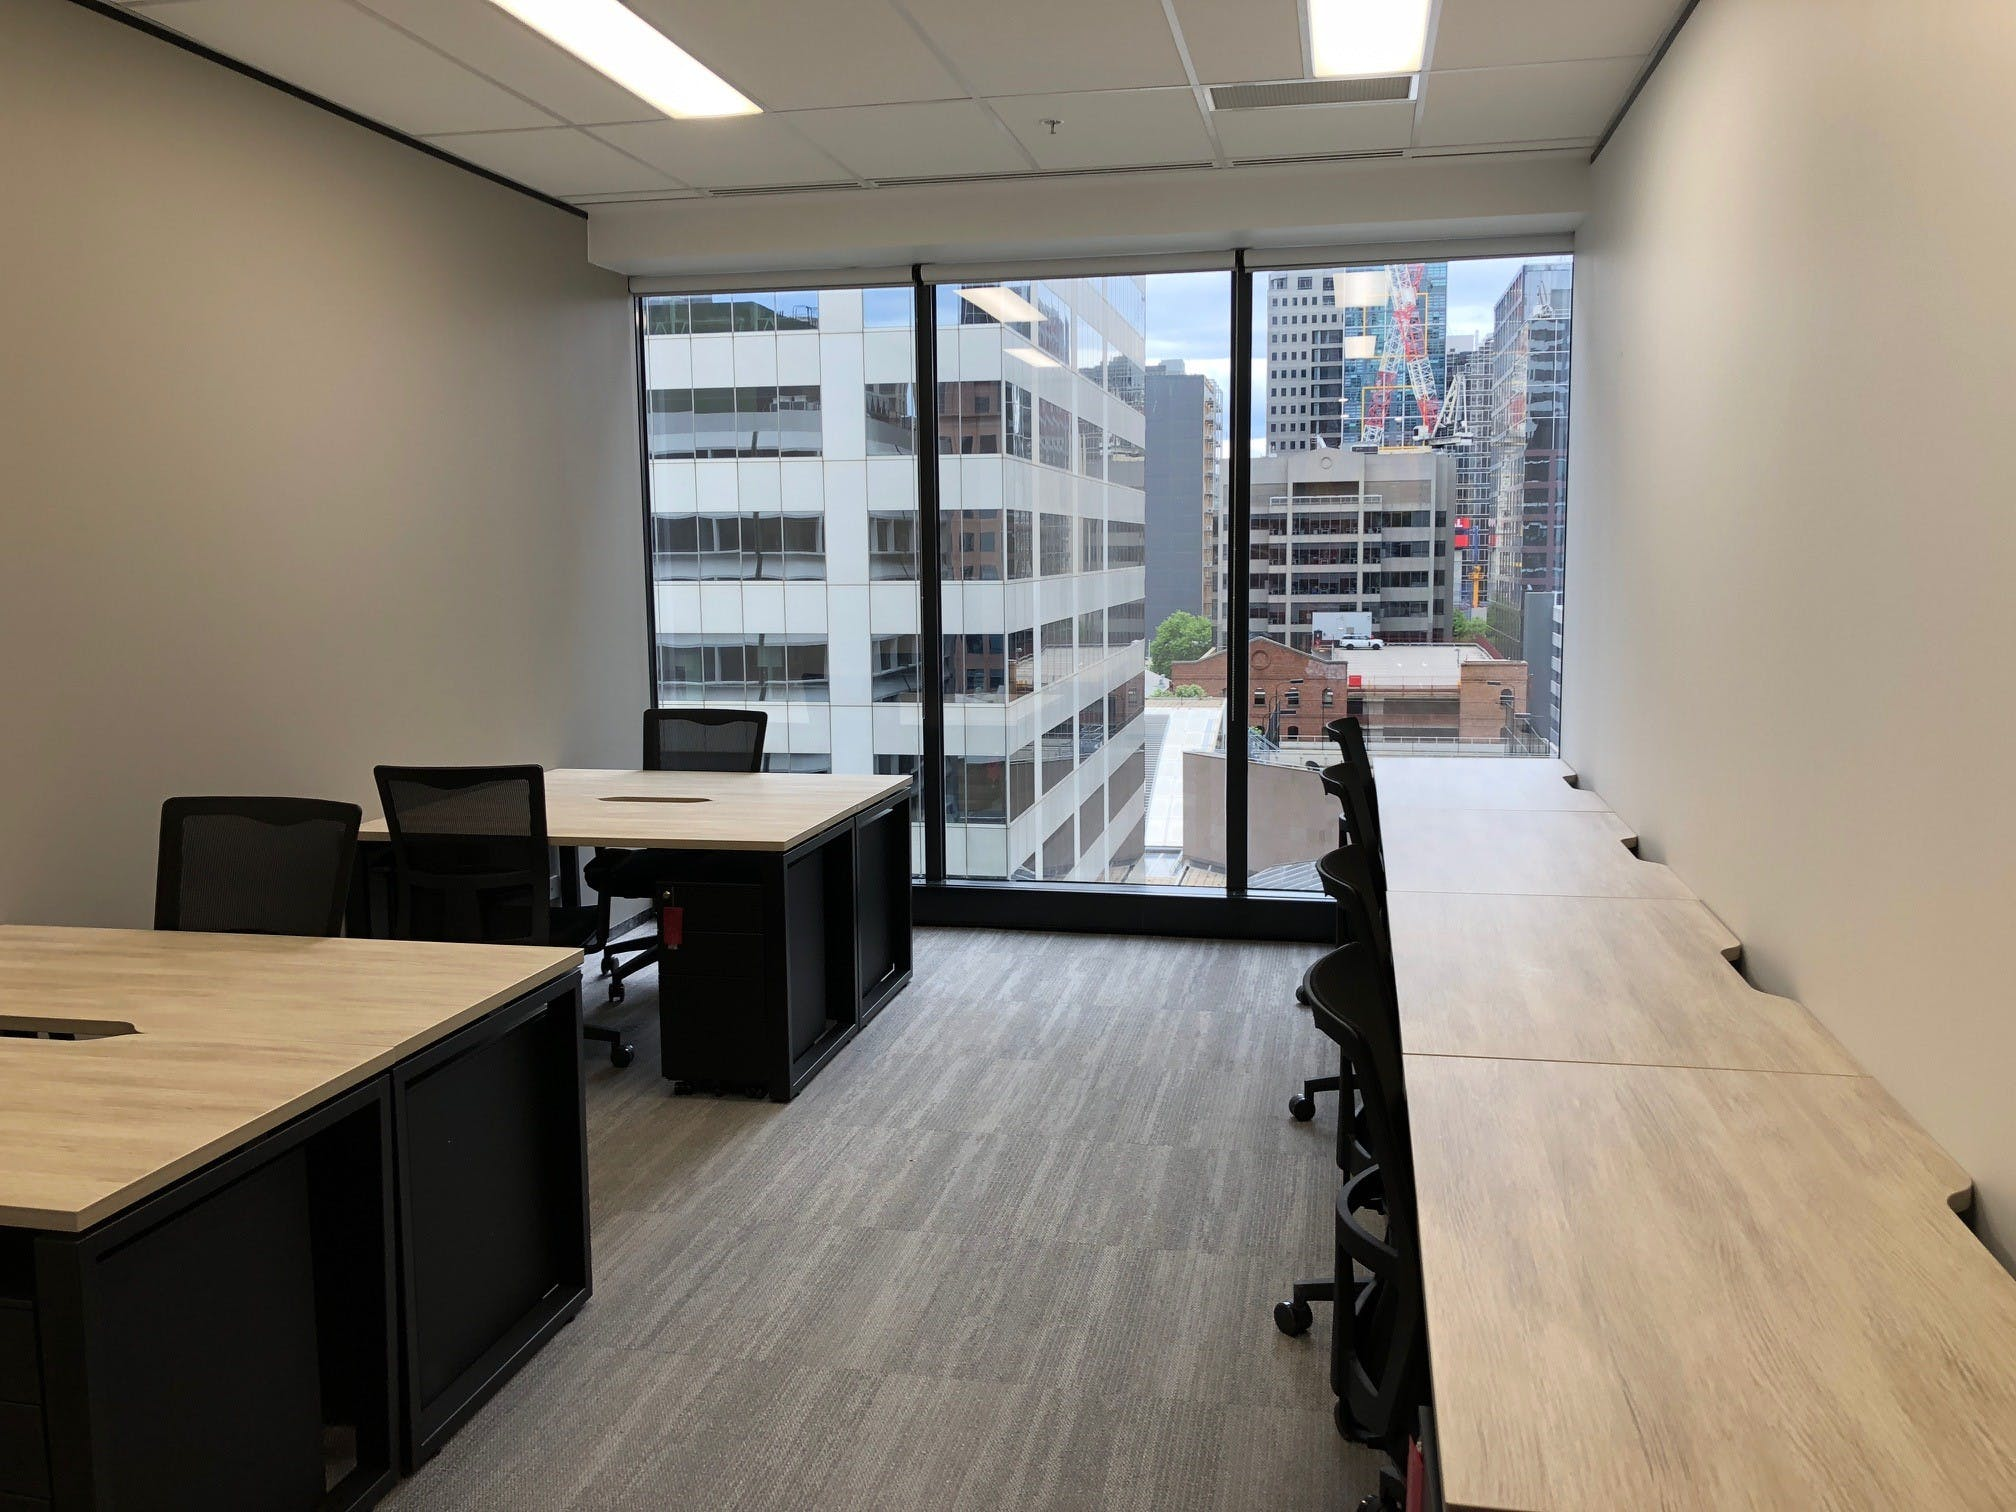 Suite 702, private office at Altitude CoWork, image 4